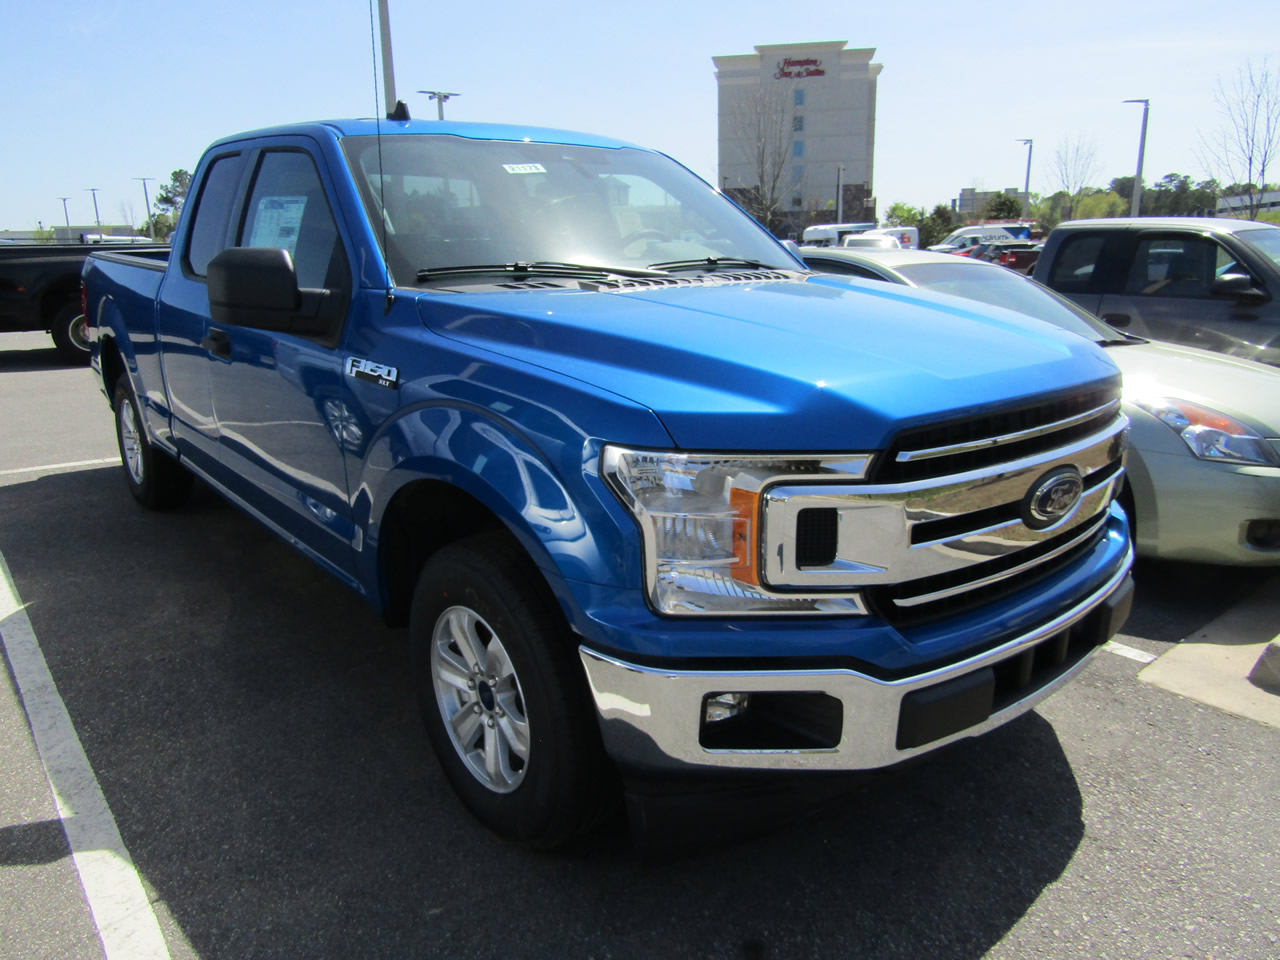 2019 Ford F-150 XLT SuperCab Dick Smith Ford serving Columbia, Sumter, Orangeburg, West Columbia, Lexington, Newberry, Lugoff SC, Selling new Ford cars and trucks and used vehciles in Columbia, SC